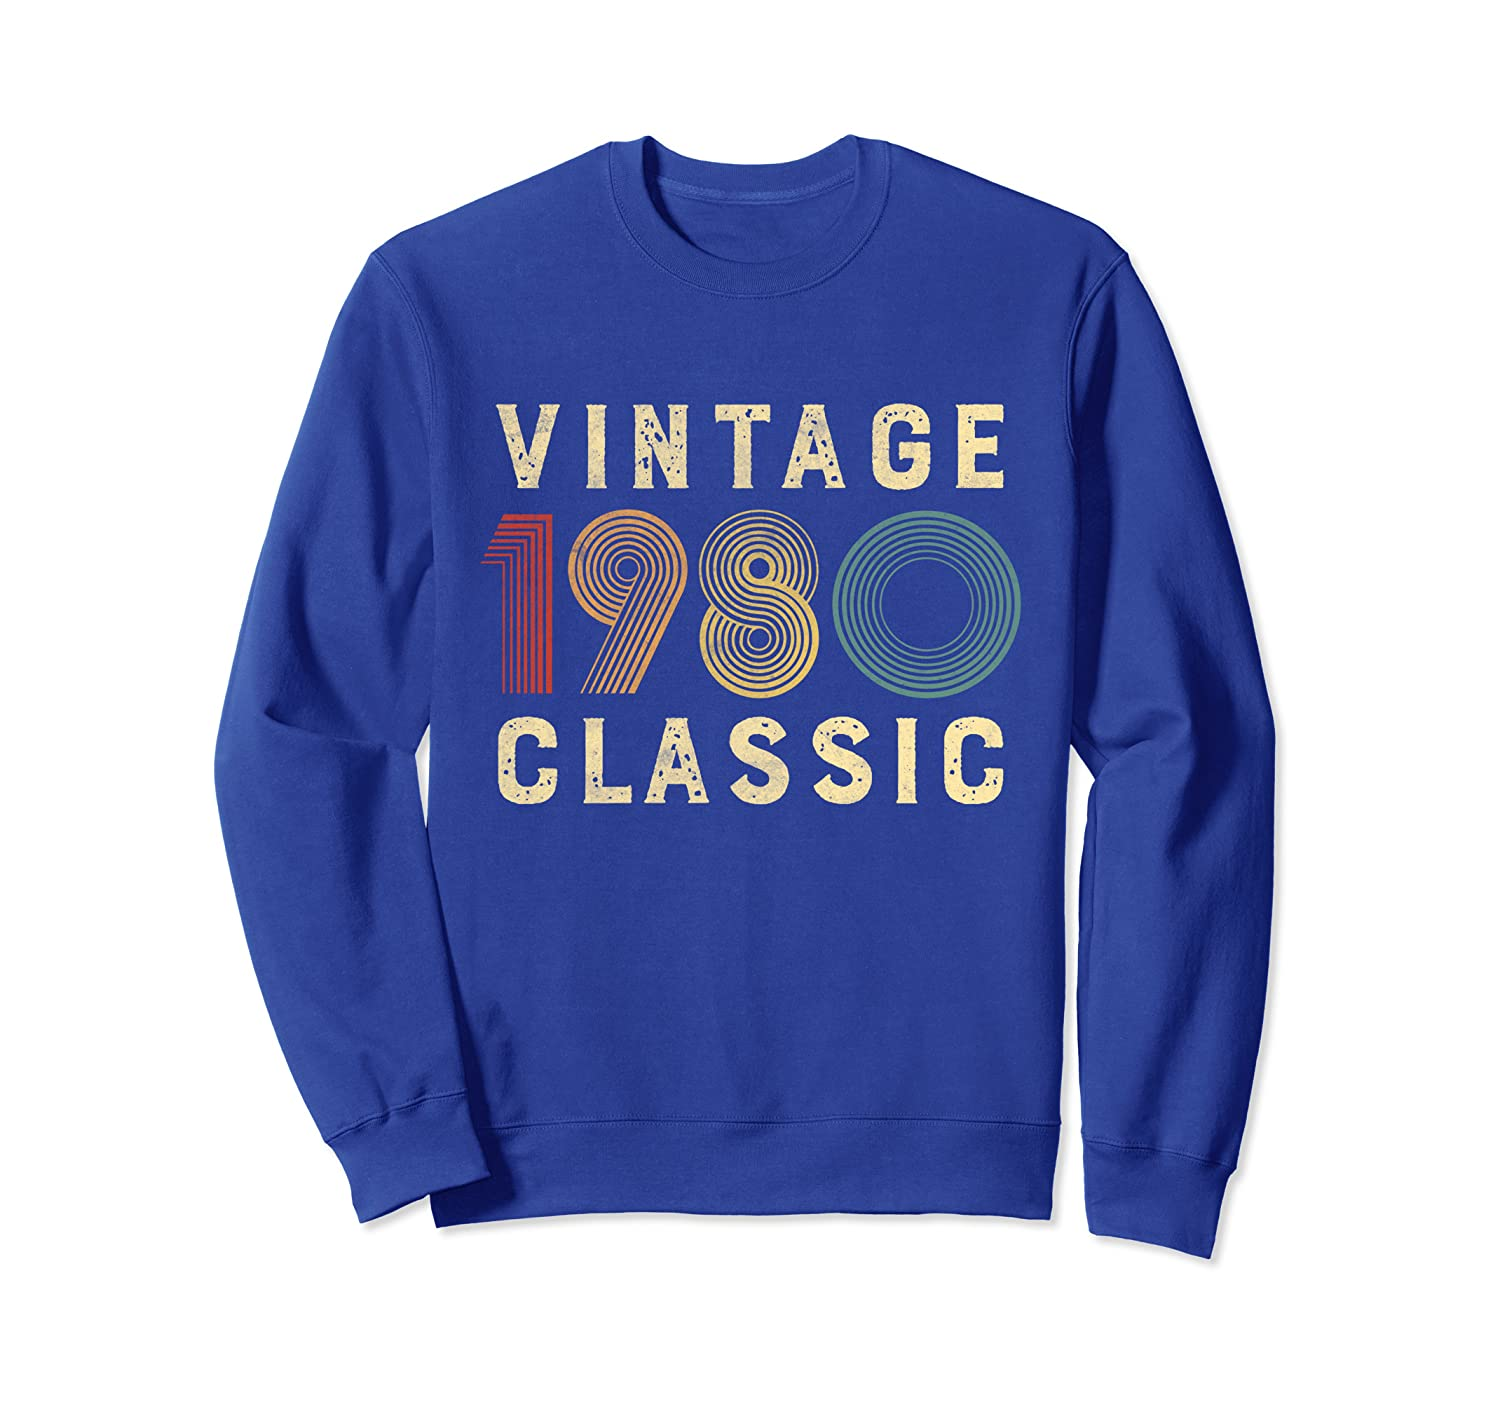 1980 40th Birthday Gift Retro Vintage Classic For Men Women Sweatshirt